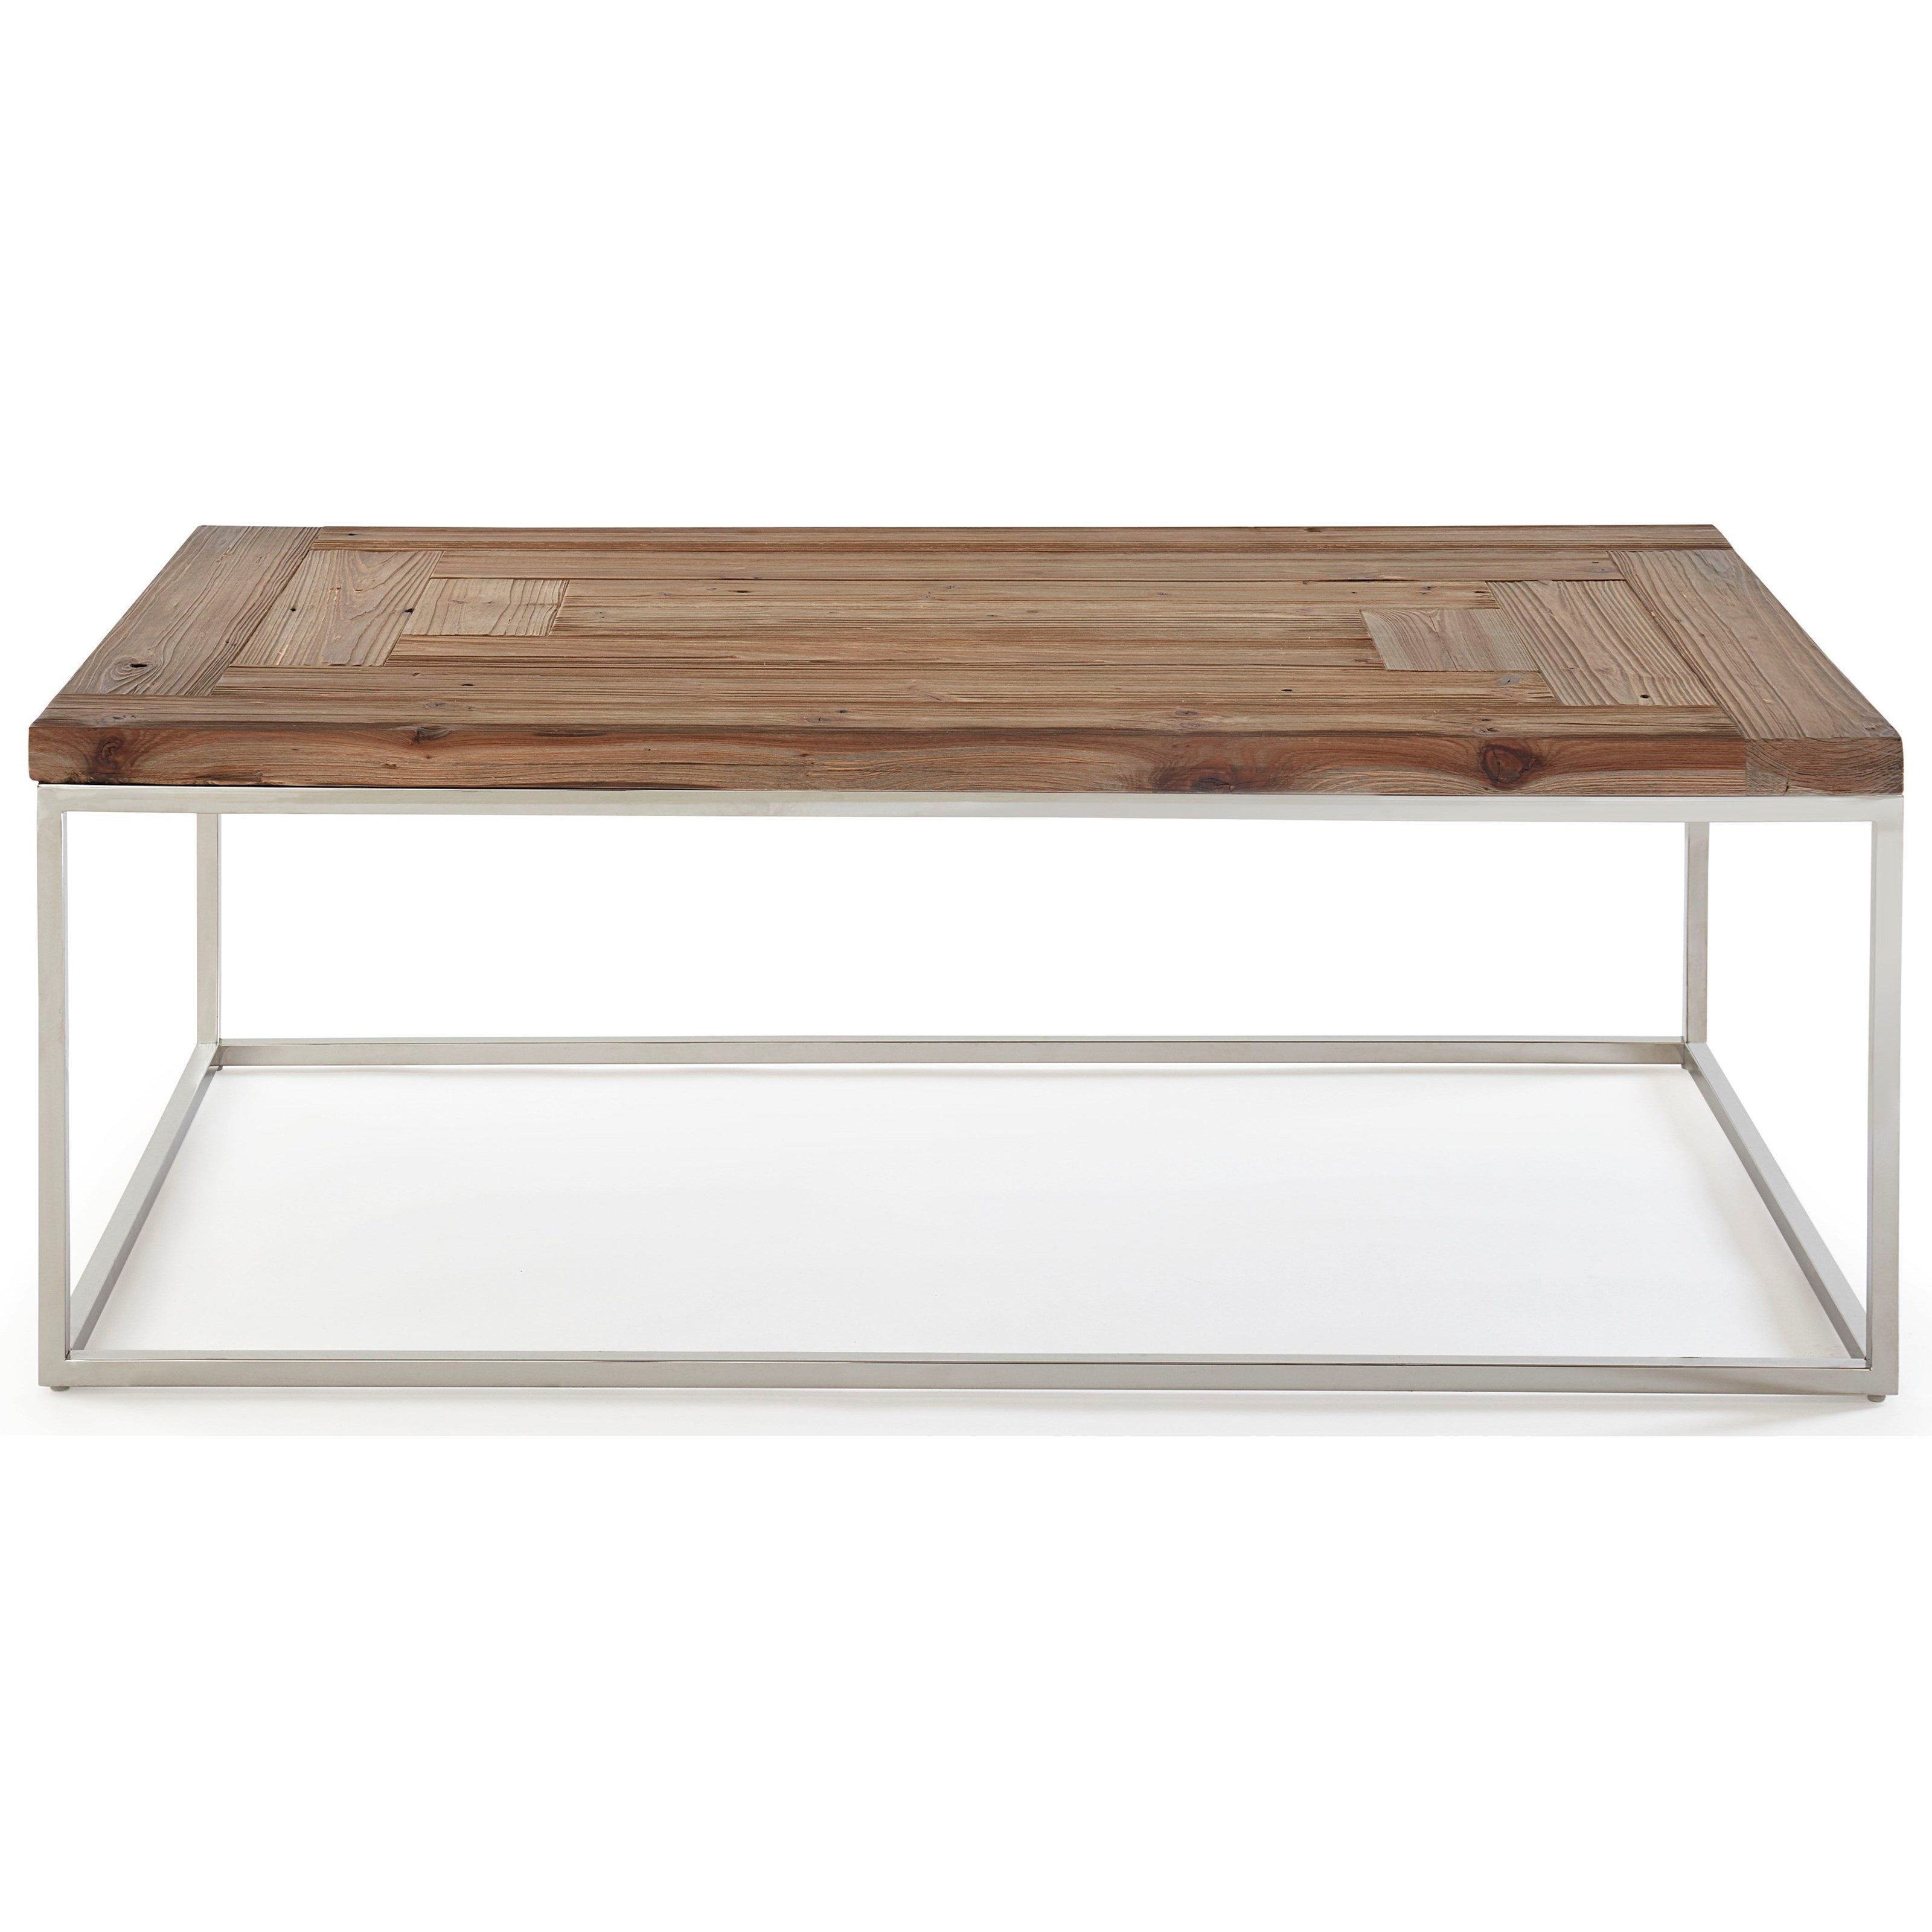 Ace Coffee Table by Modus International at A1 Furniture & Mattress